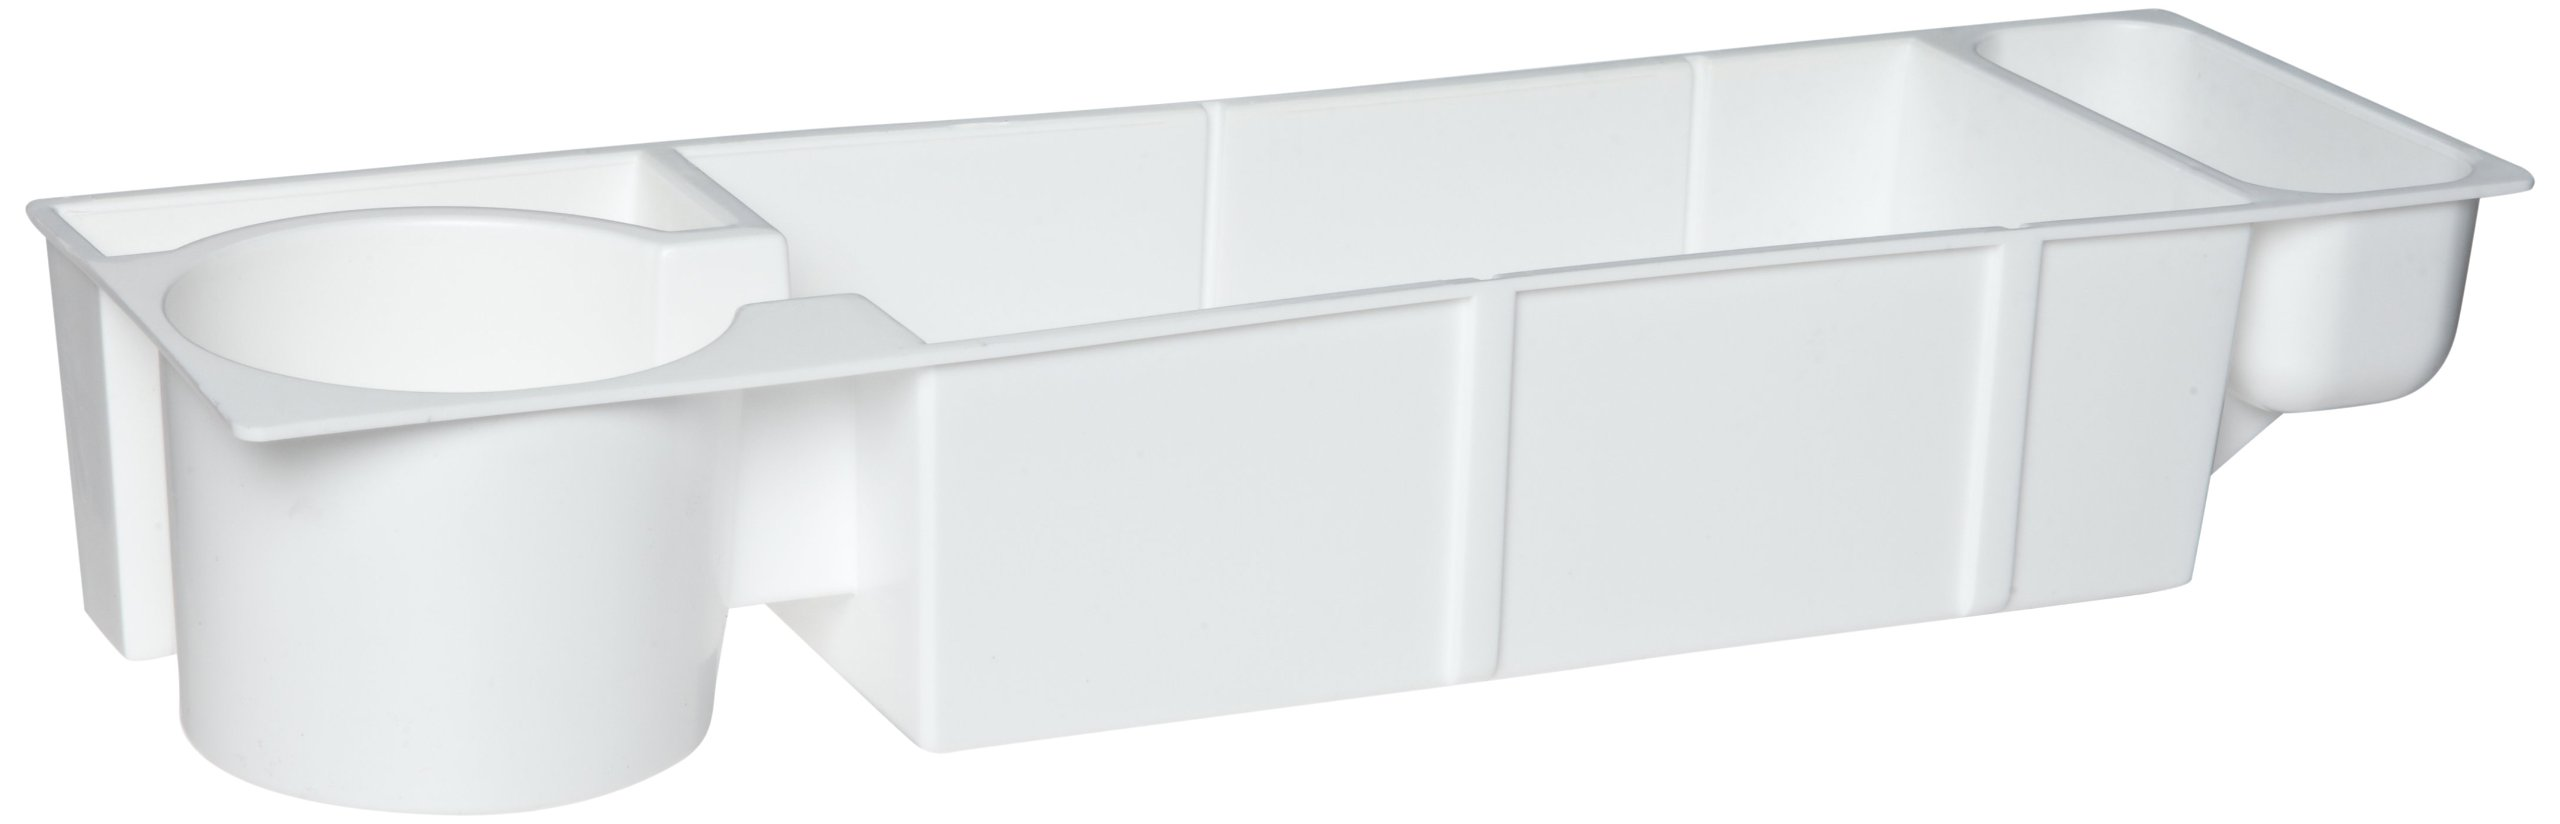 Ableware 703190001 Walker Basket Replacement Tray